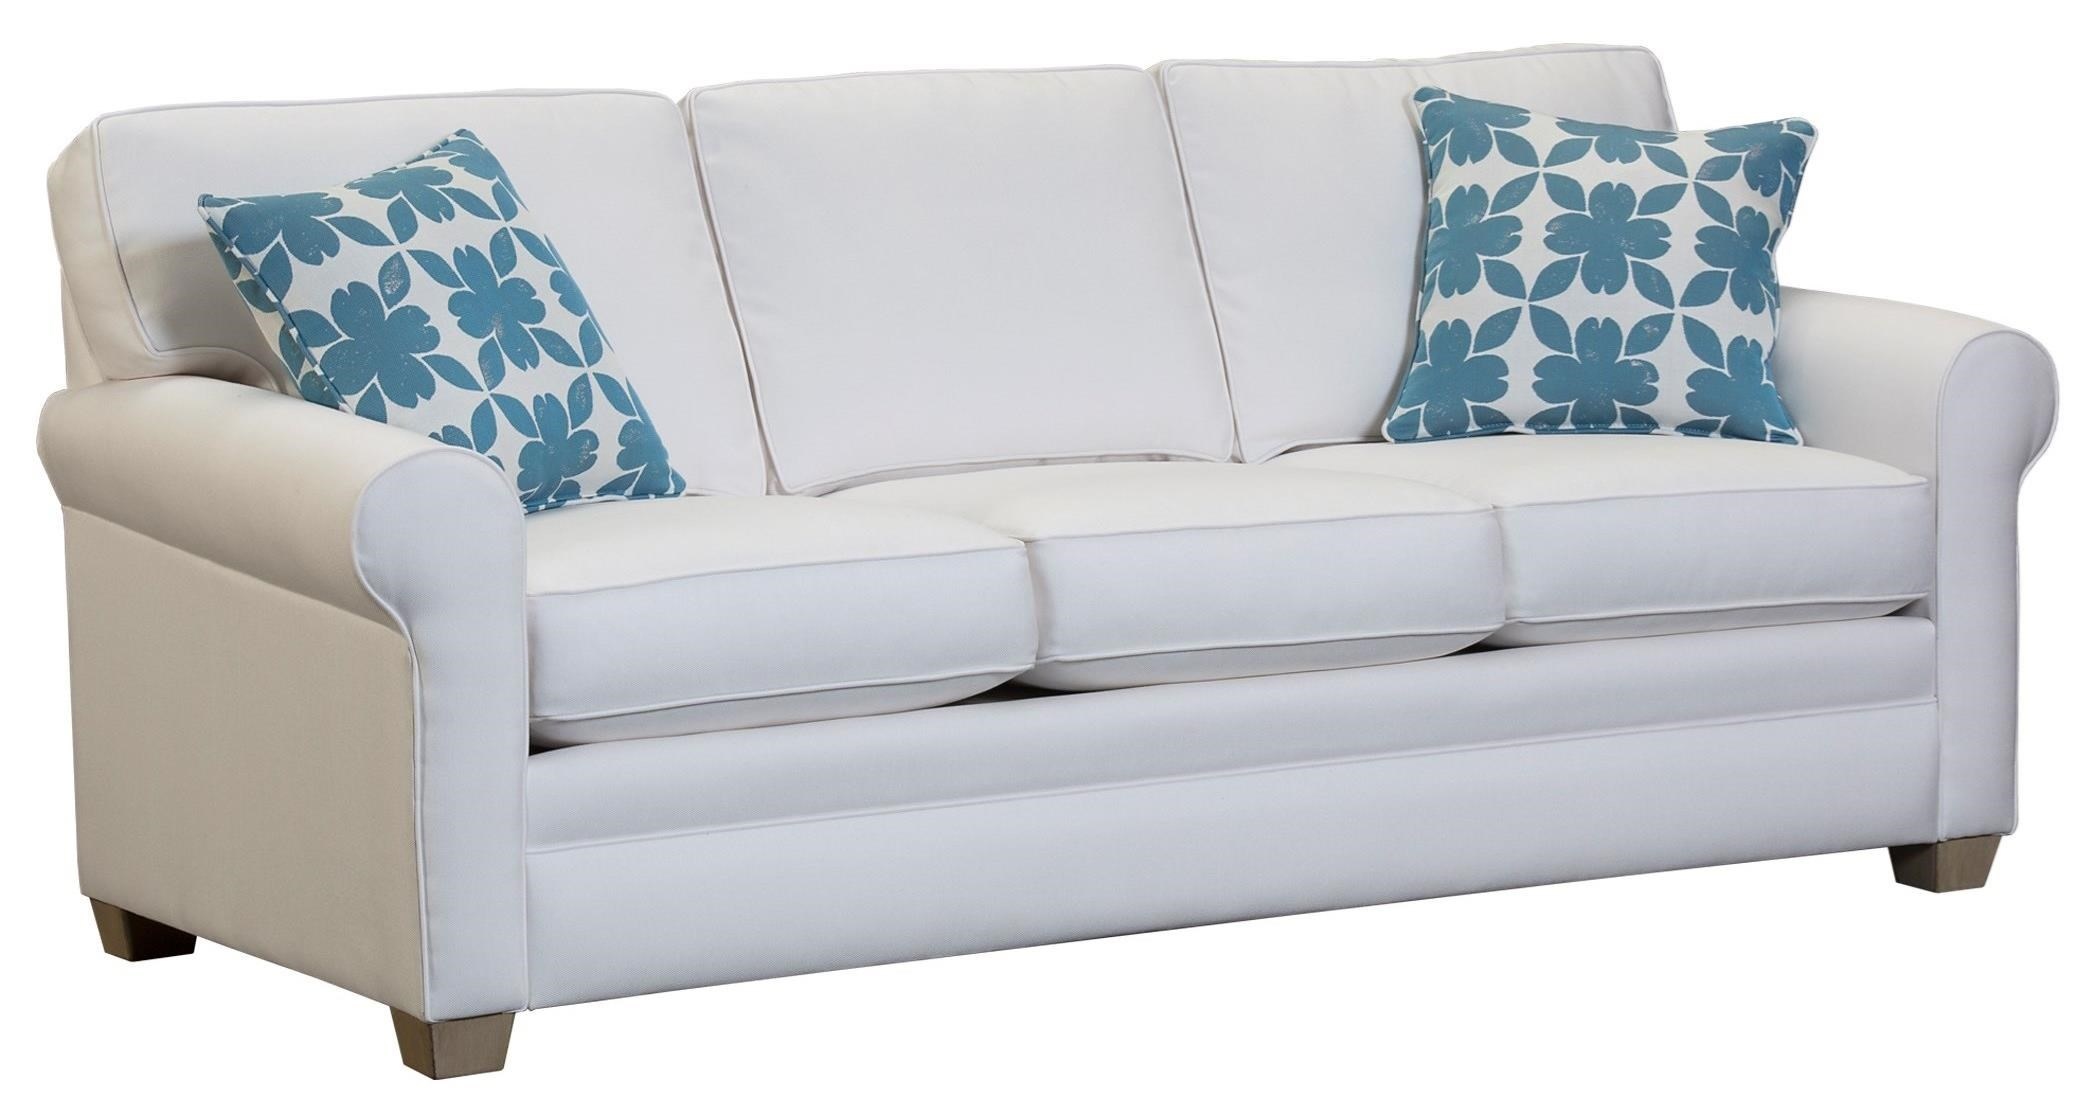 402 Sofa by Capris Furniture at Esprit Decor Home Furnishings